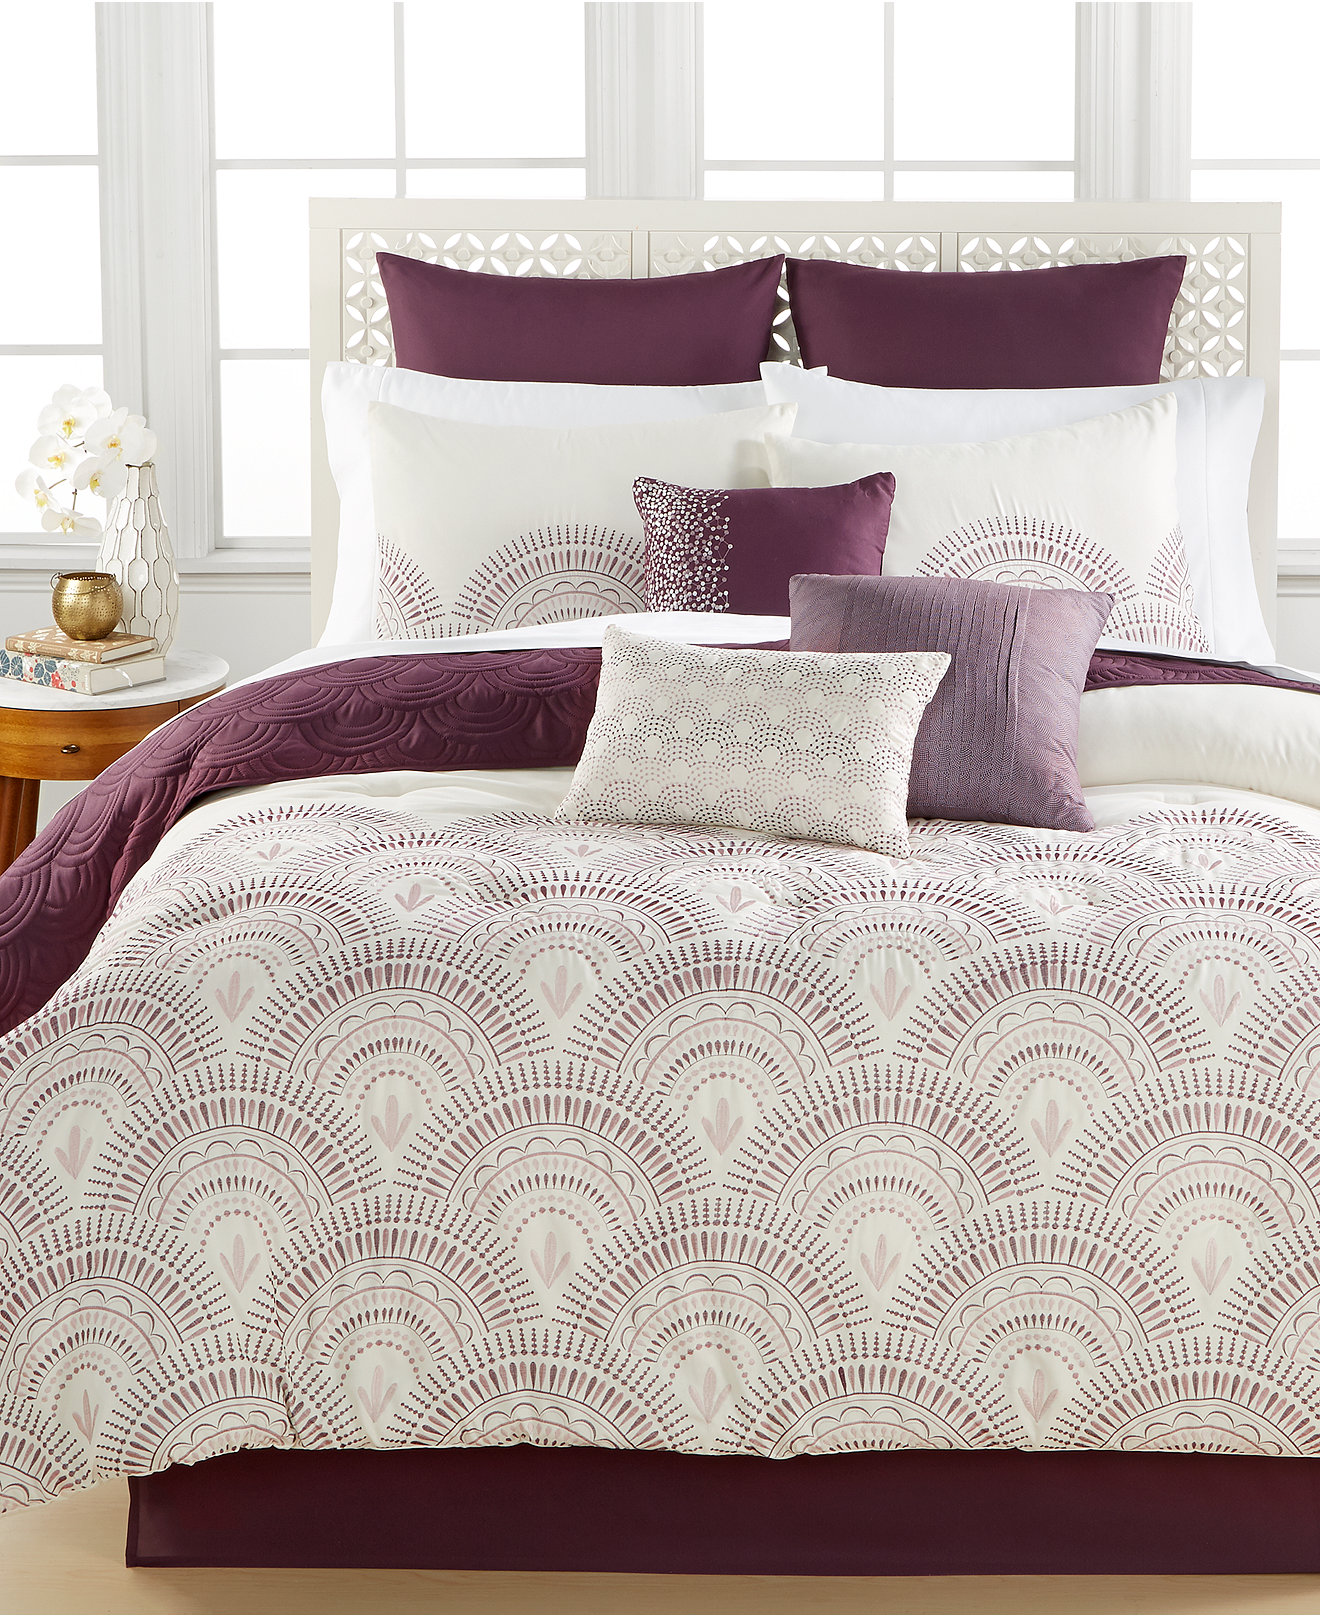 macy 39 s beautiful 8 10 piece bedding sets as low as of course the one i love isn 39 t in. Black Bedroom Furniture Sets. Home Design Ideas